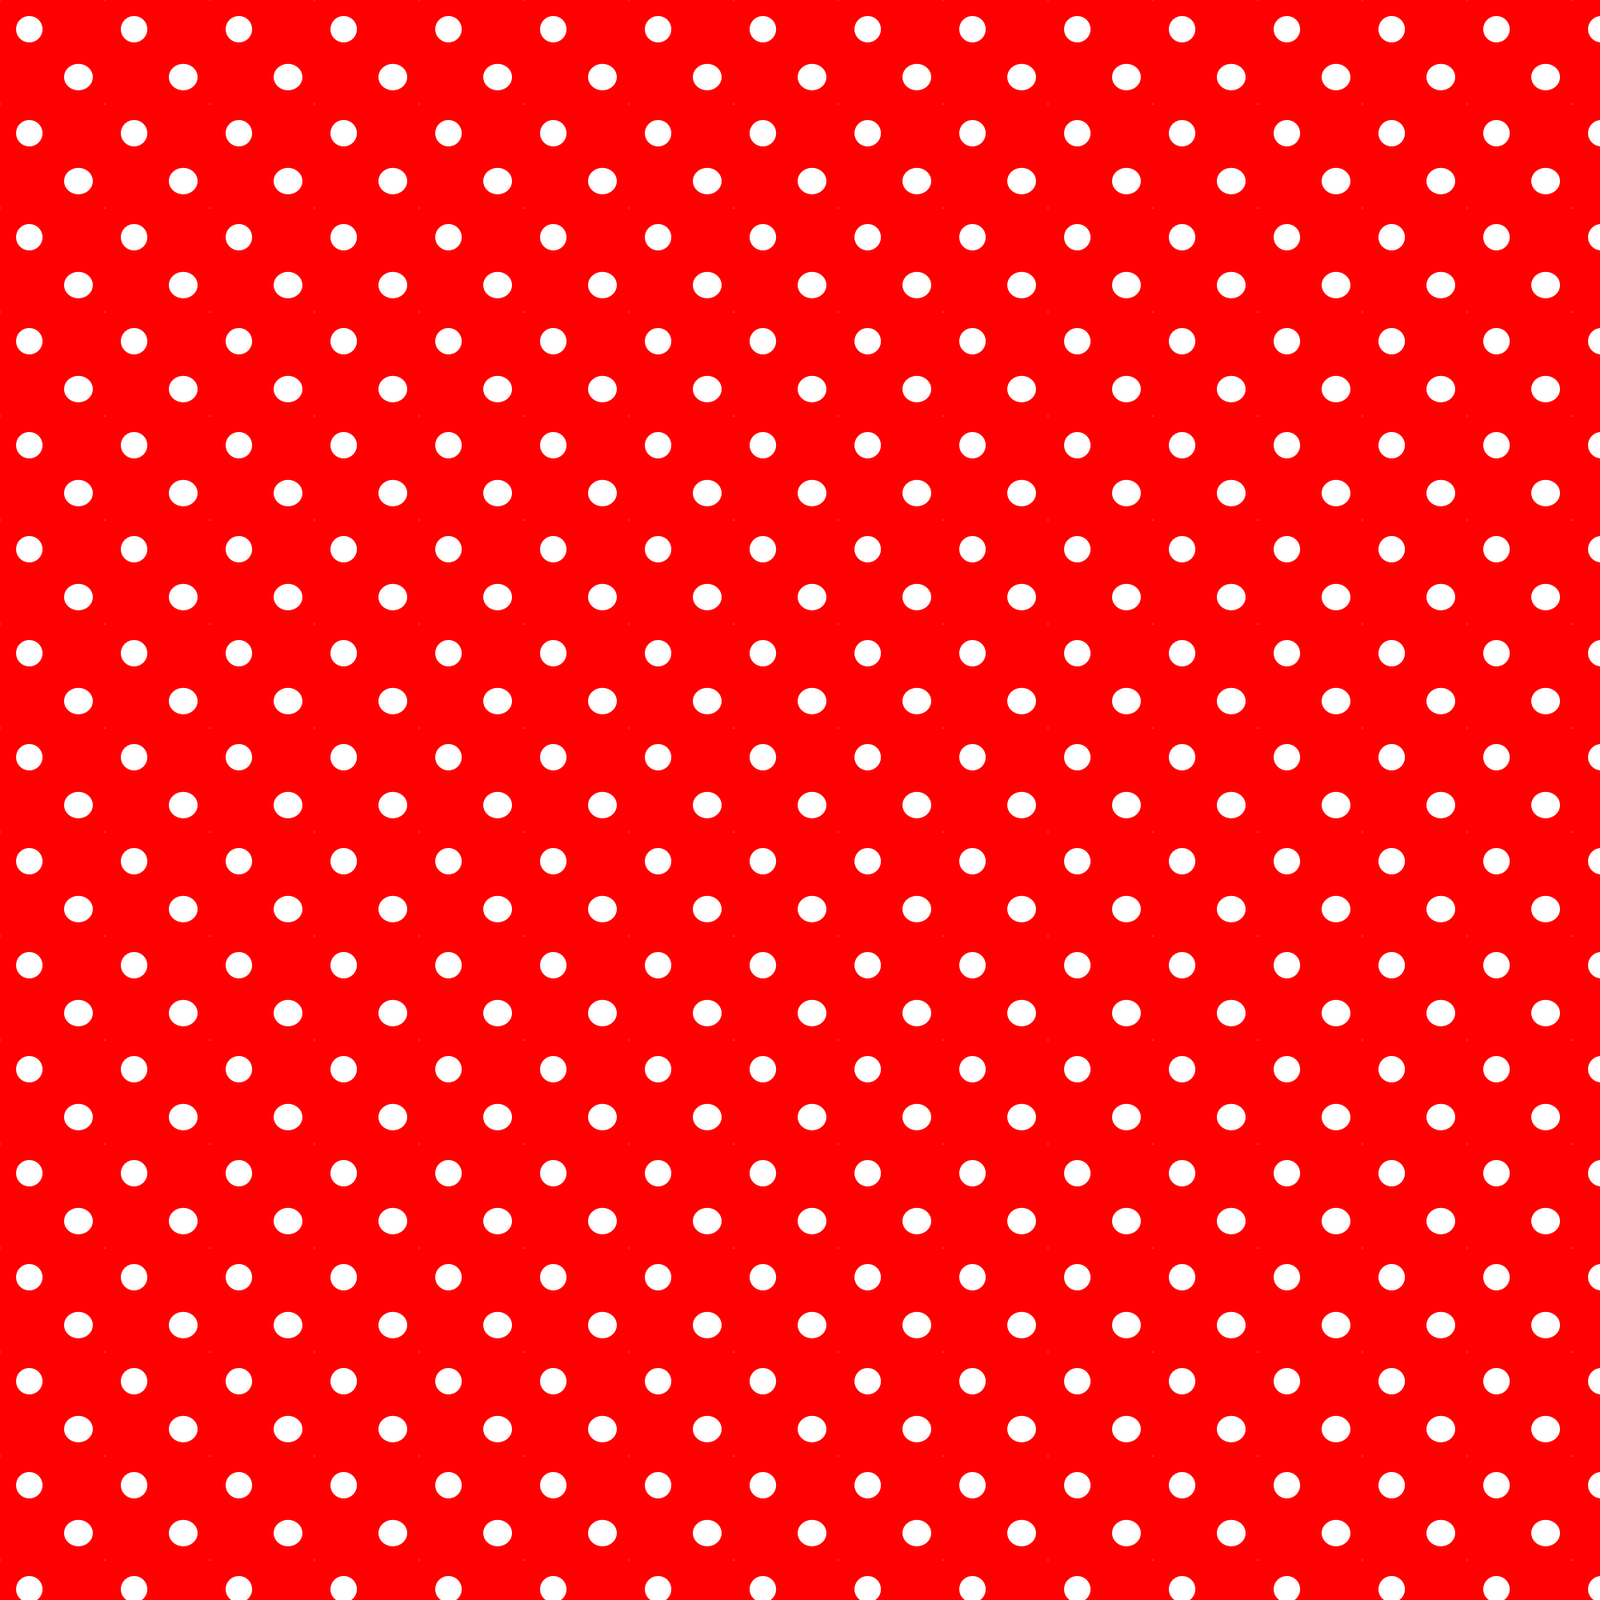 red and white small - photo #10